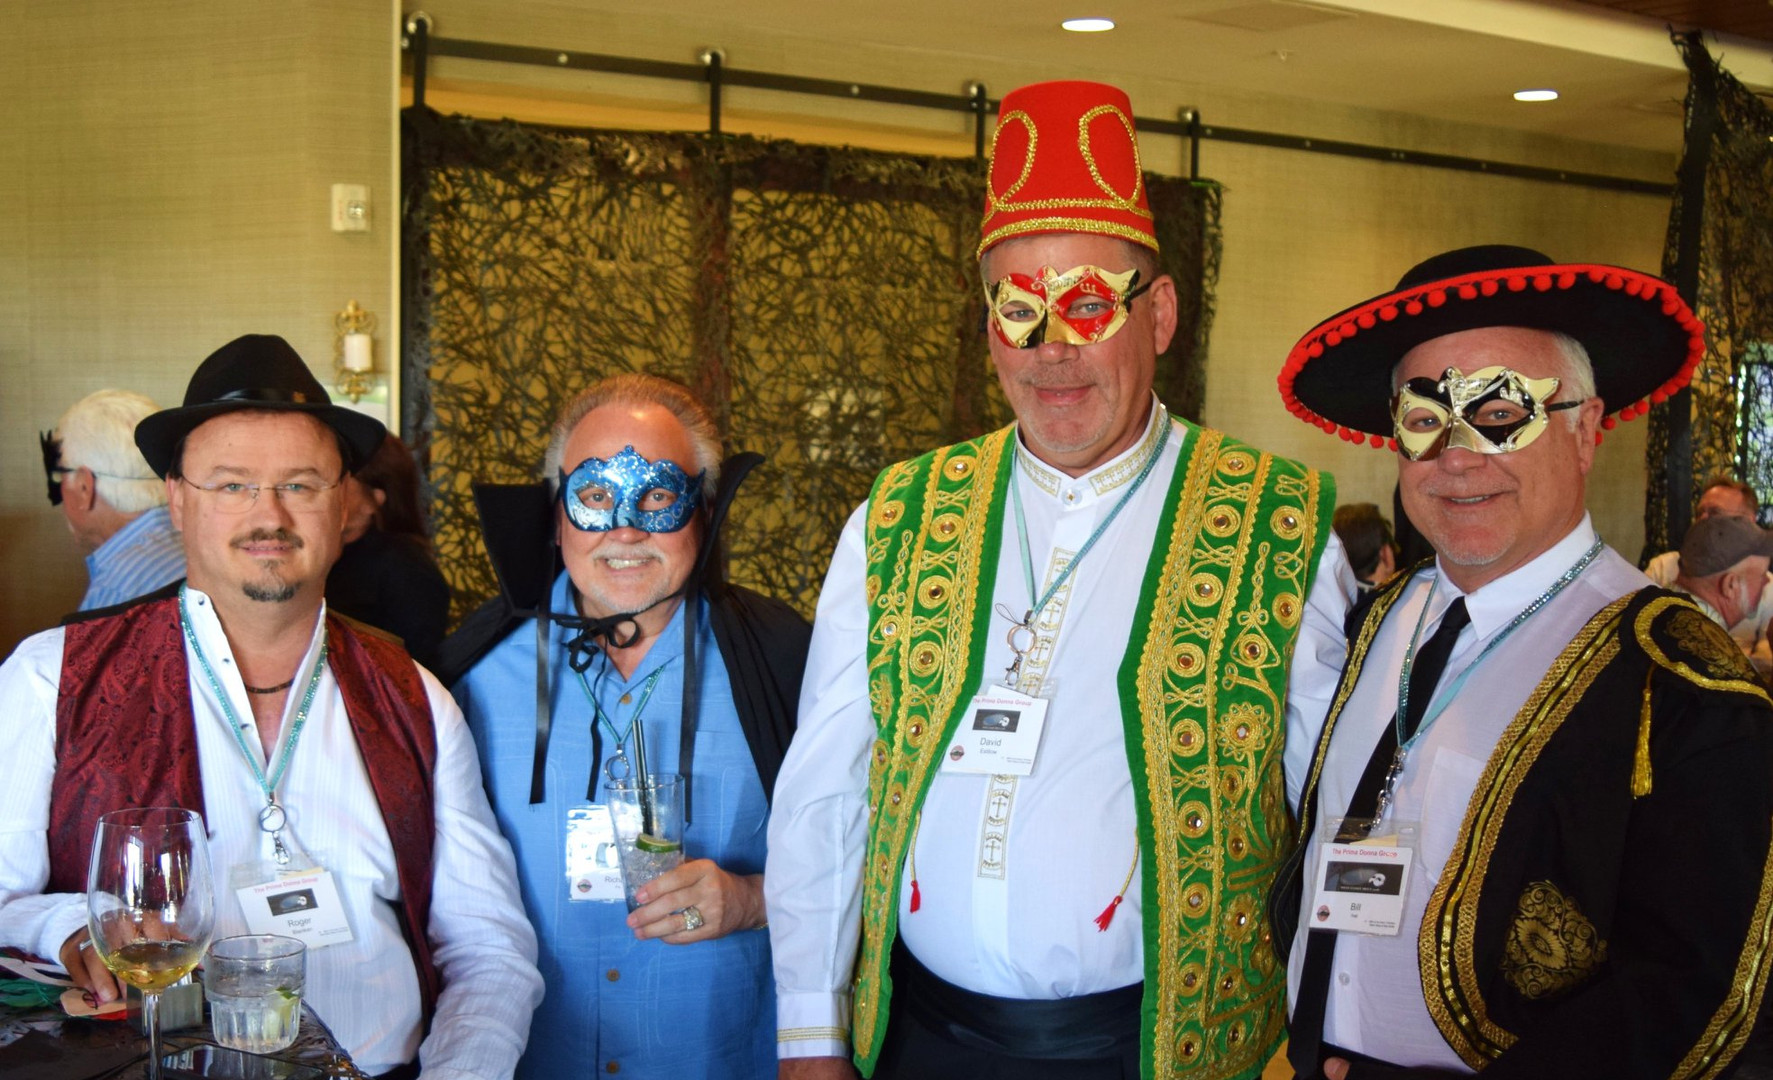 Masquerade Ball - holding up their end of the bar.jpg